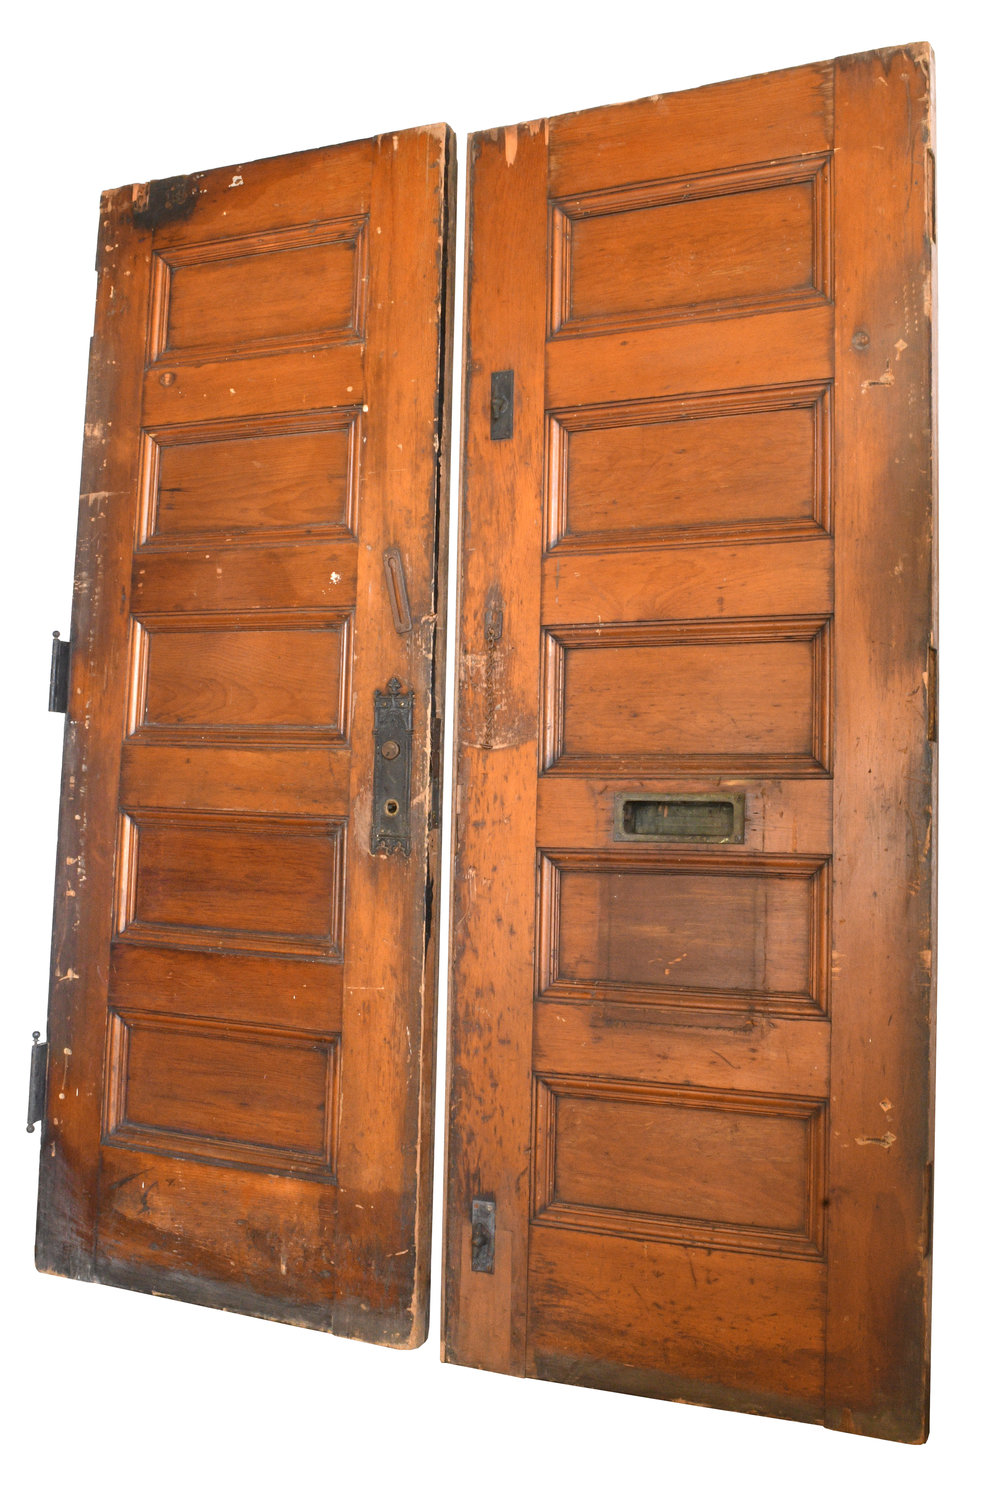 47742-double-doors-with-strap-hinges-unpainted-side.jpg